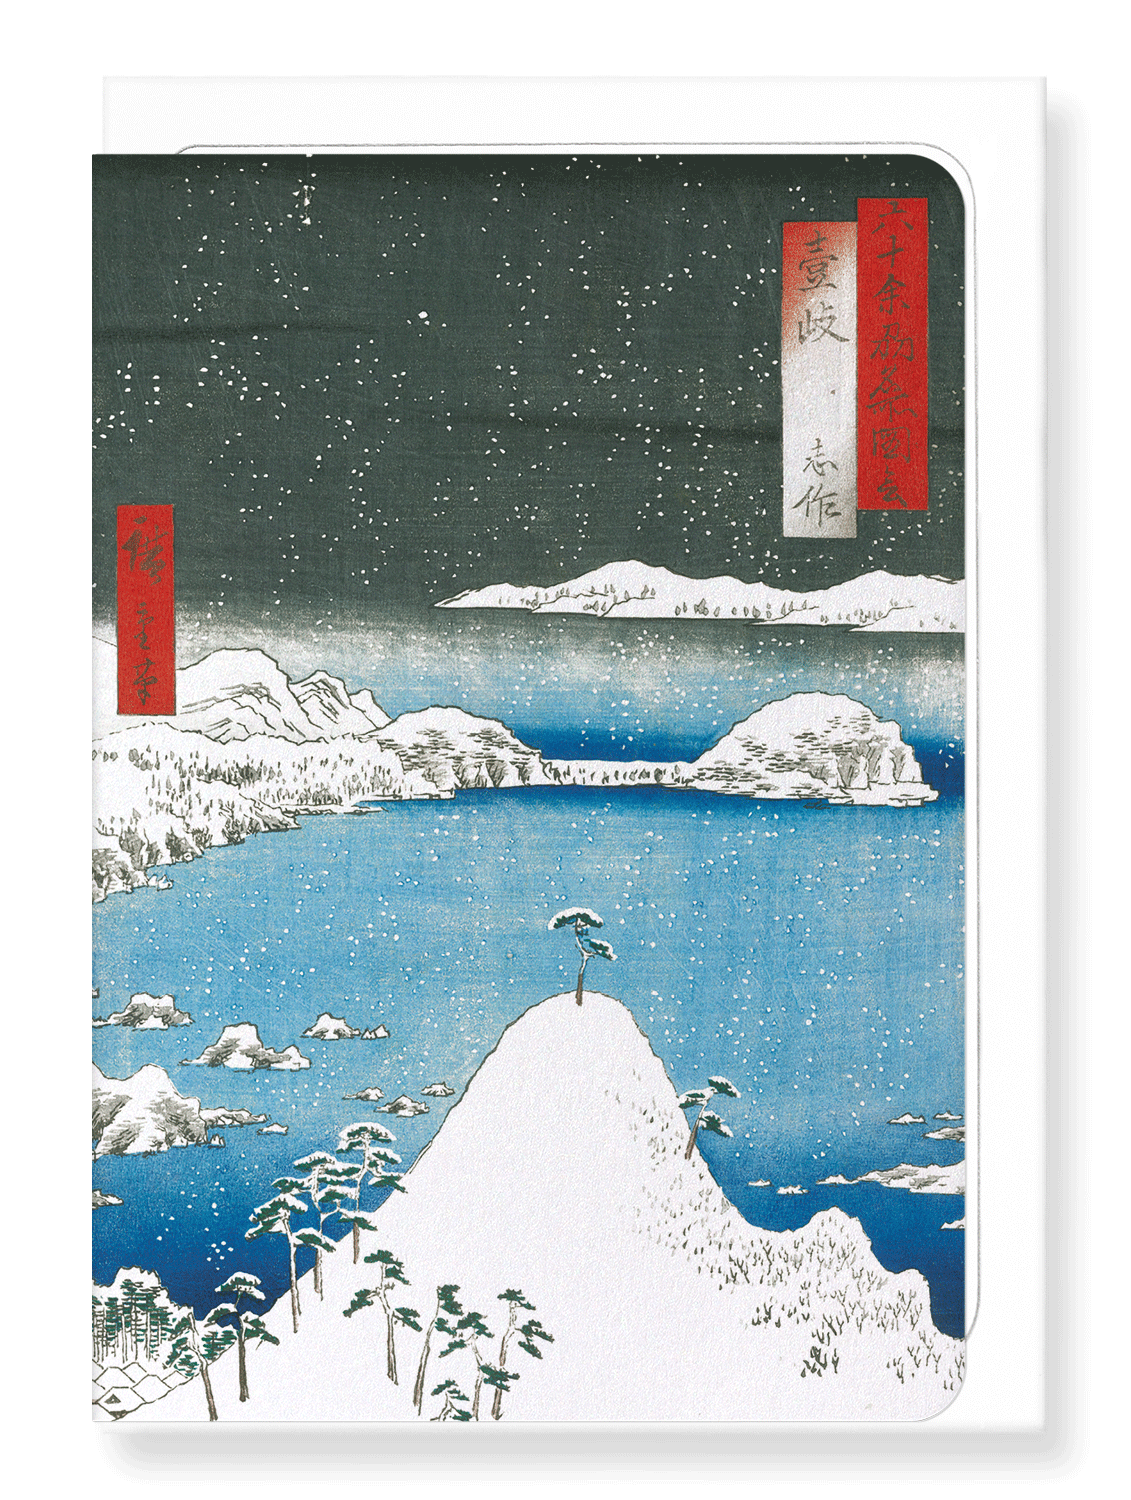 Ezen Designs - Snow at iki province - Greeting Card - Front